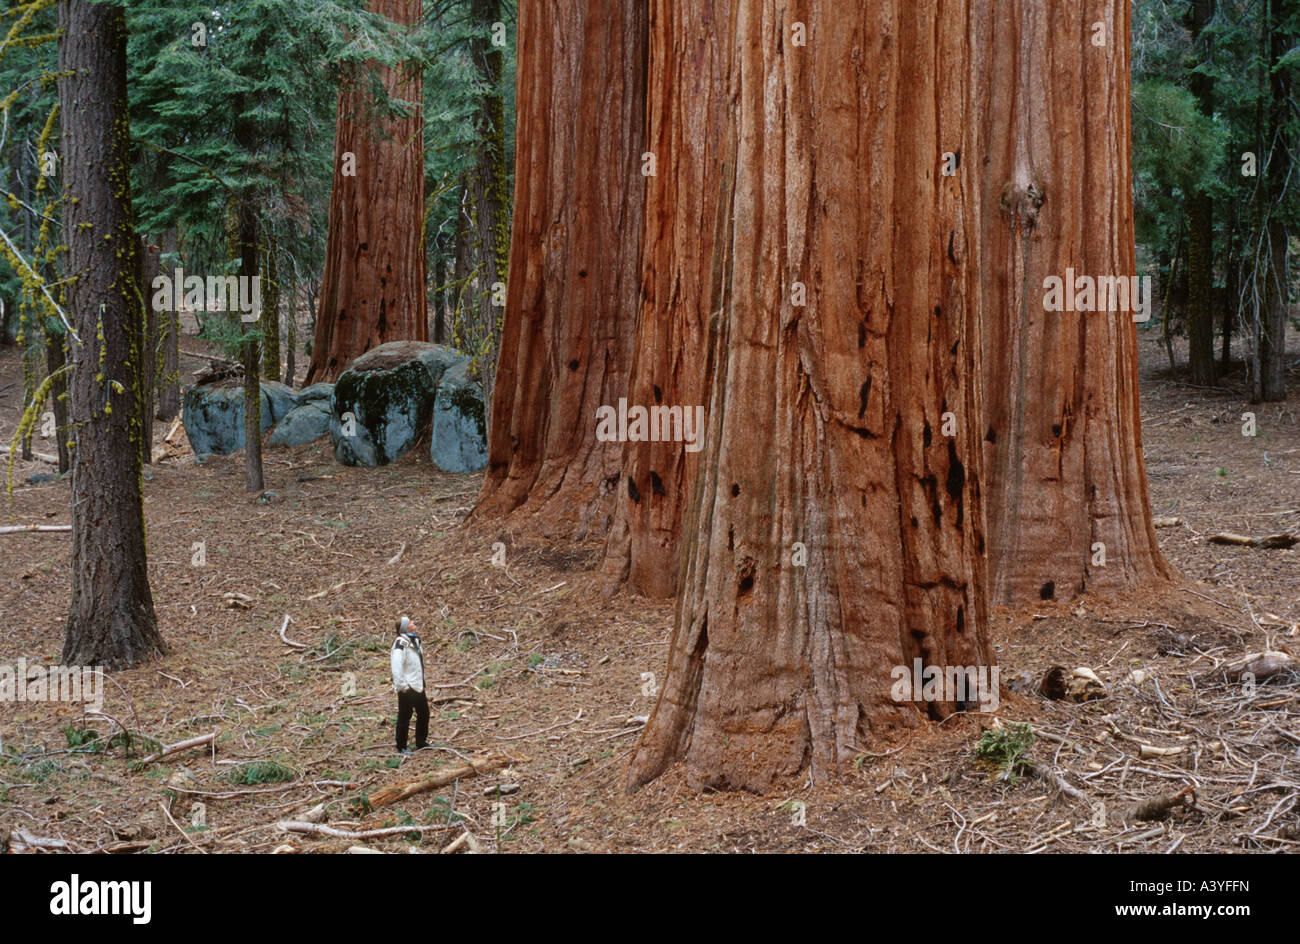 planting a sequoia by dana gioia essay But today we kneel in the cold planting you, our native giant, defying the practical custom of our fathers, wrapping in your roots a lock of hair, a piece of an infant's birth cord.